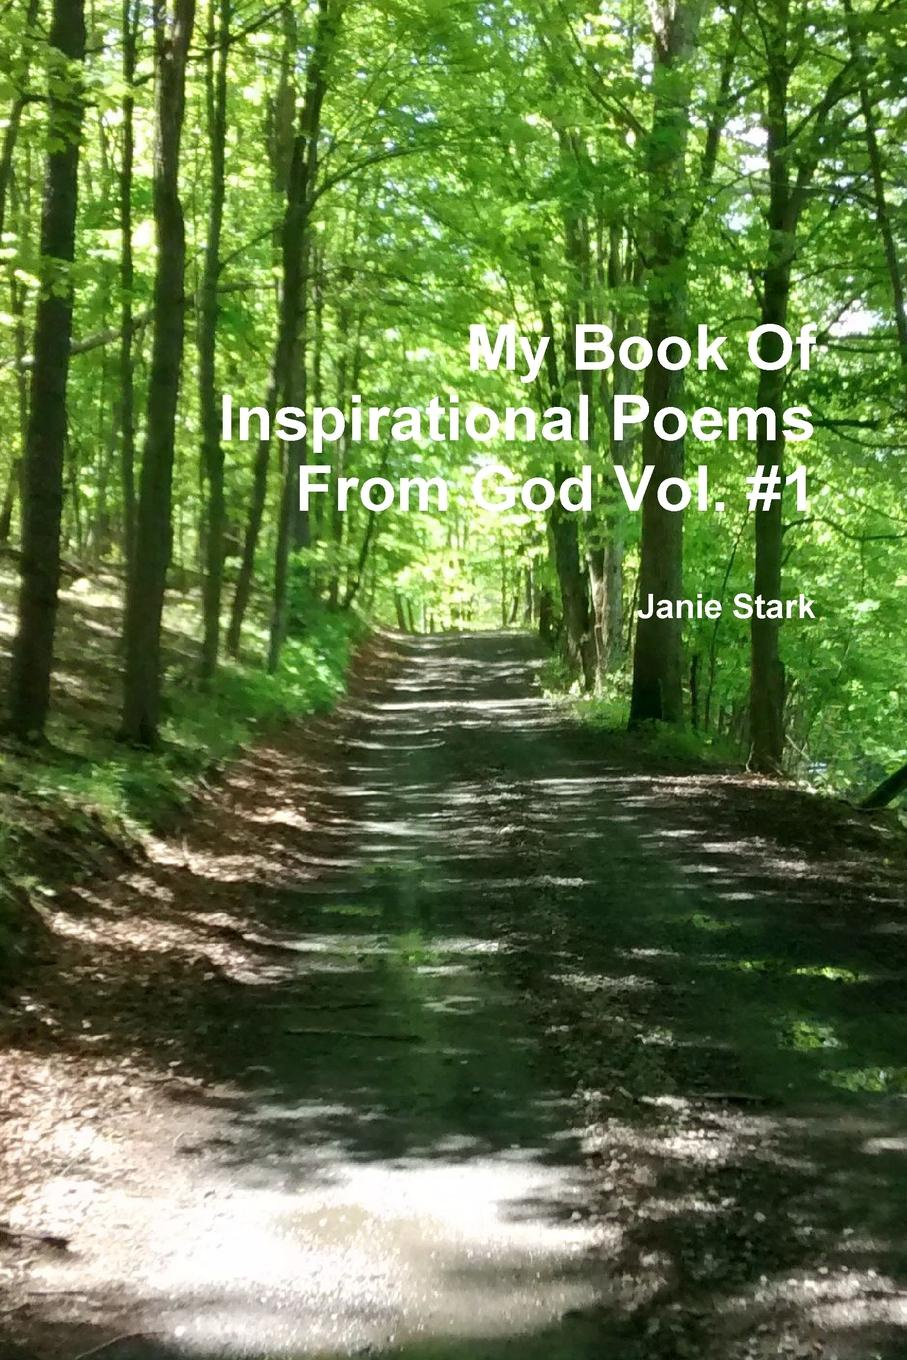 Janie Stark My Book Of Inspirational Poems From God Vol. #1